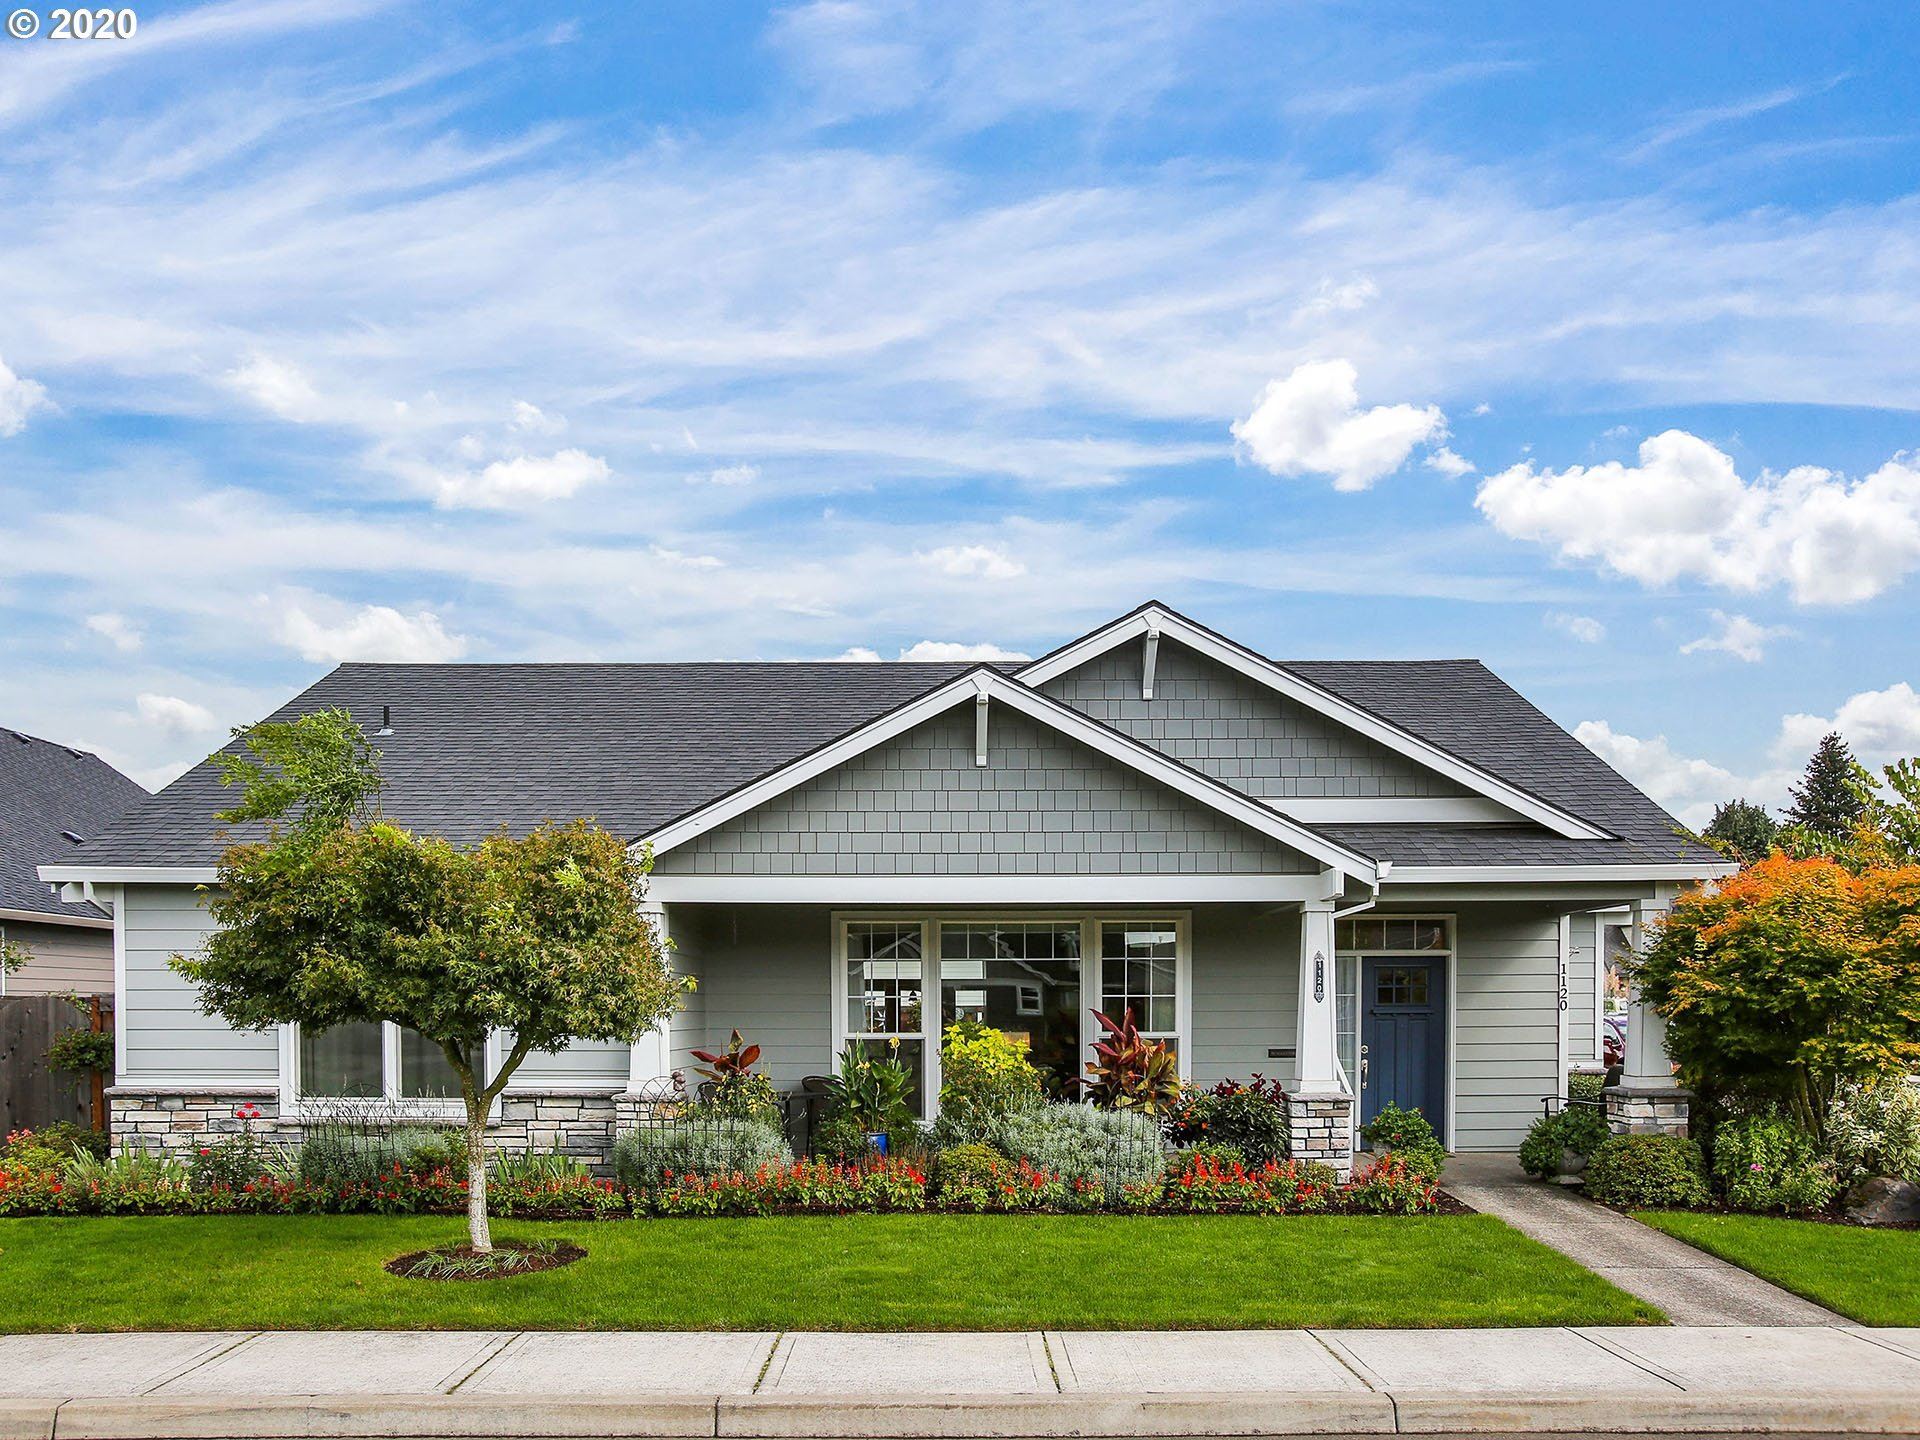 1120 N ELM ST, Canby, OR 97013 - MLS#: 20555071